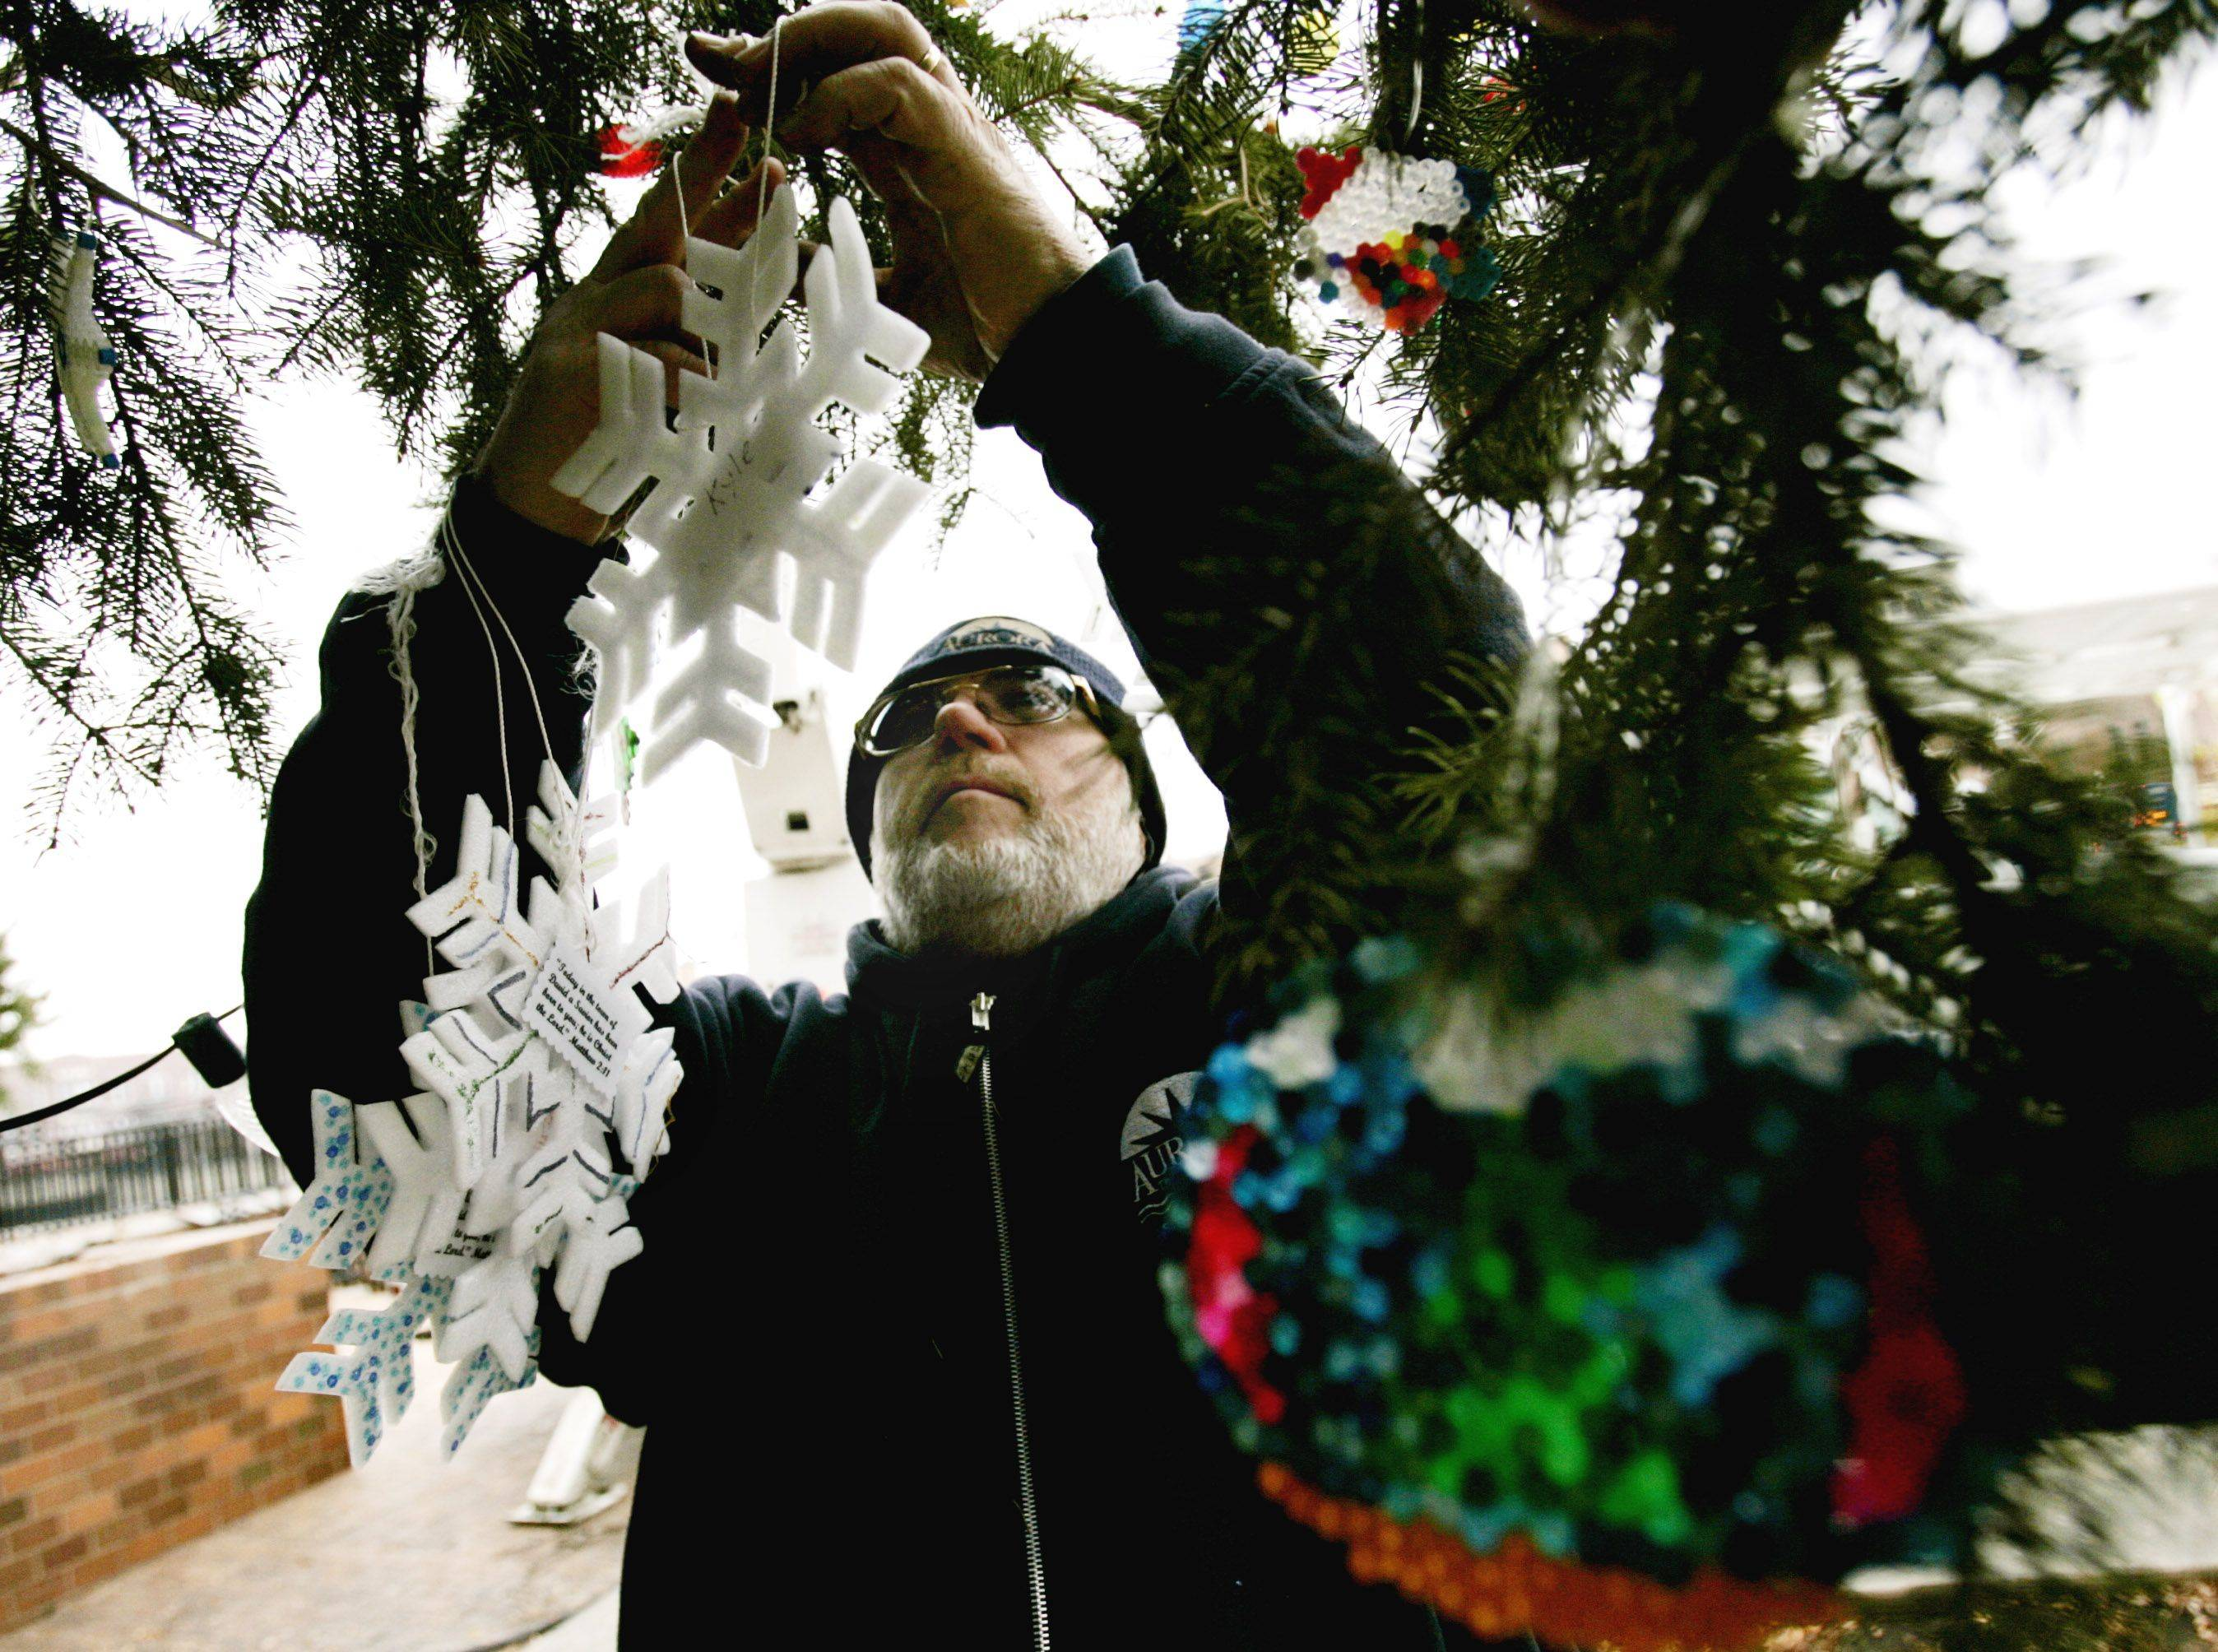 Aurora Street Department employee Don Sadler hangs ornaments on the holiday tree, in preparation for the ceremony at North Island Center in Aurora.